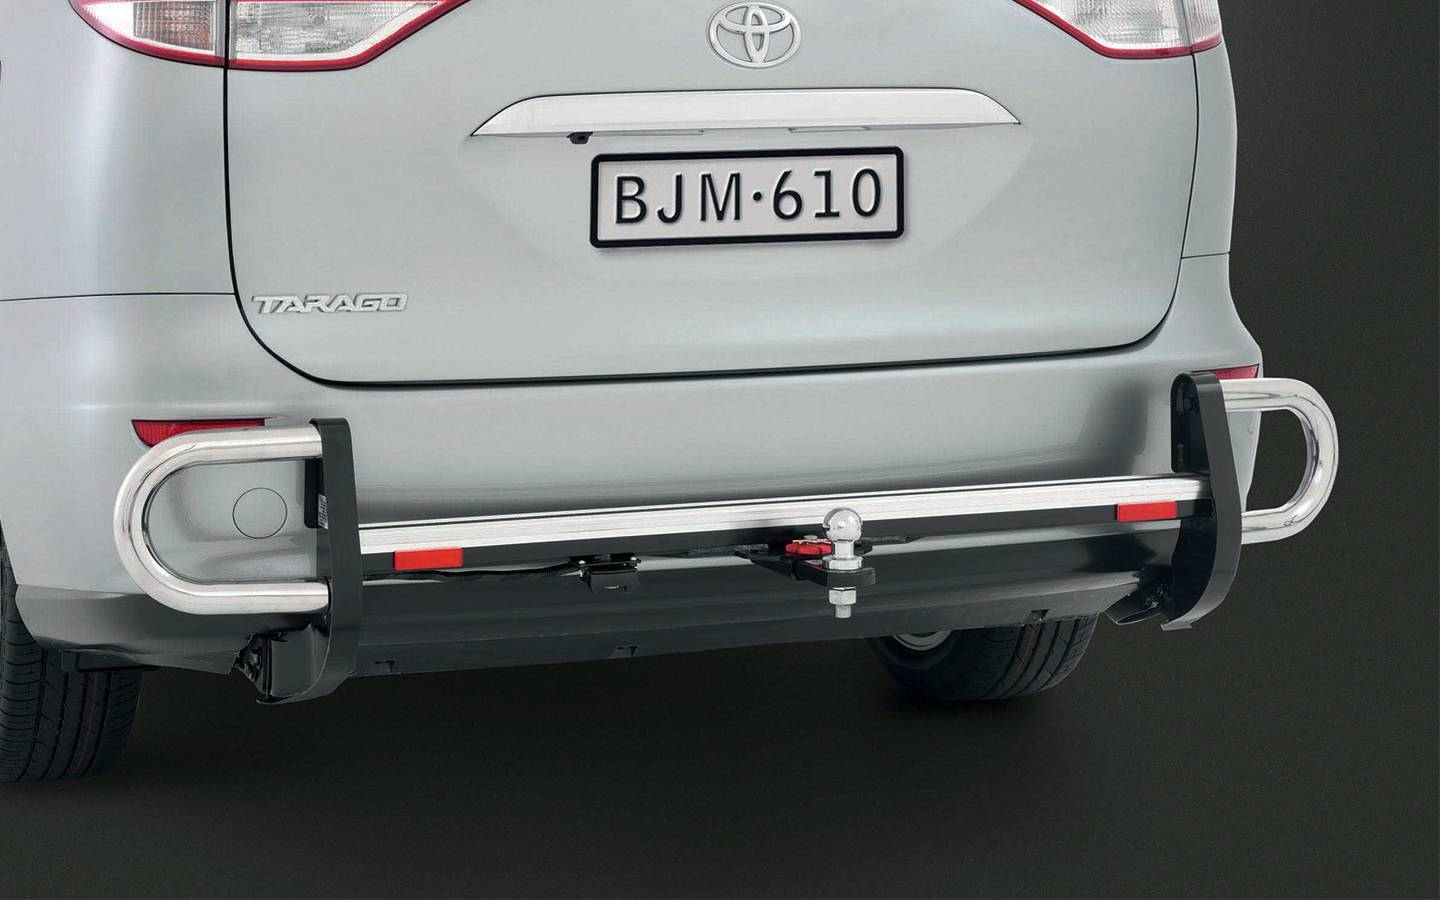 Torque Toyota Tarago Wiring Harness Trunk Tow Bar With Rear Step And Side Protector Ball Trailer